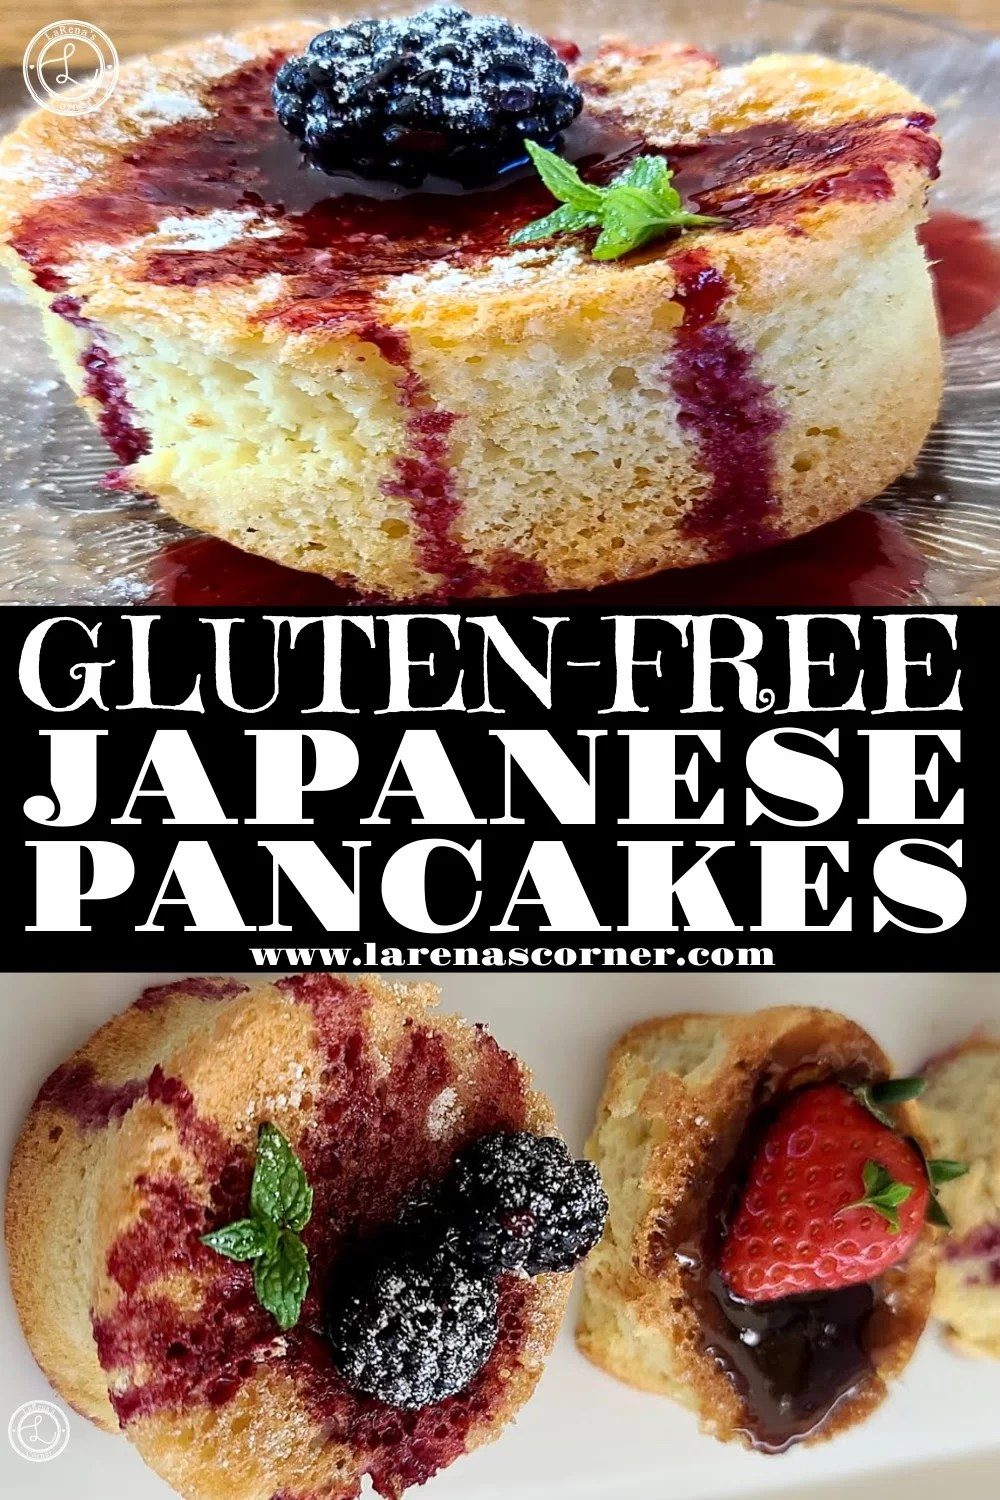 Two Pictures Gluten-Free Japanese Pancakes. One close-up and one further away with two pancakes on a plate.